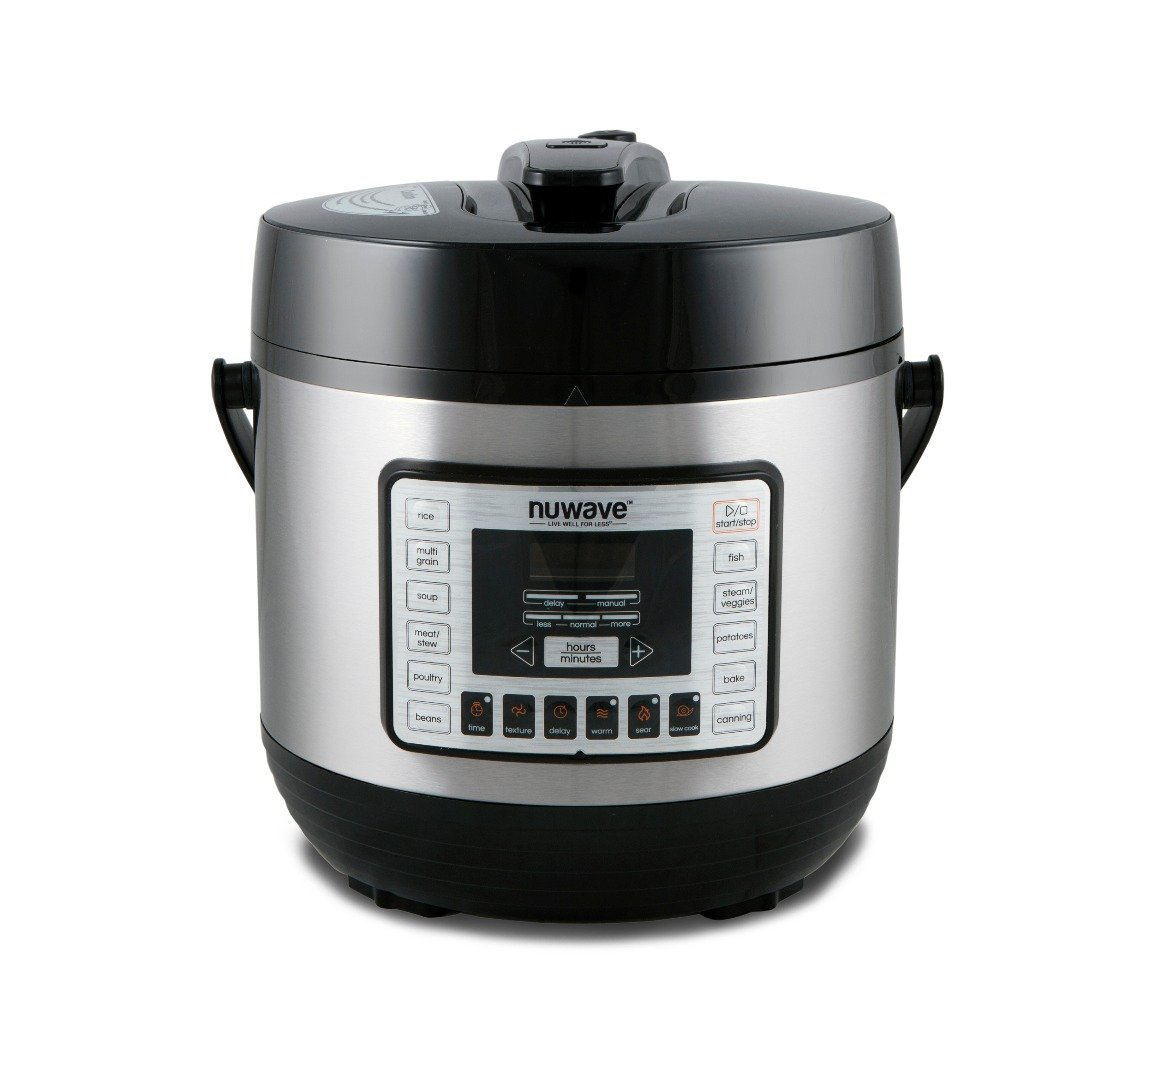 Nu Wave 33101 Nutri-Pot Pressure Cooker, 6 quart, Black